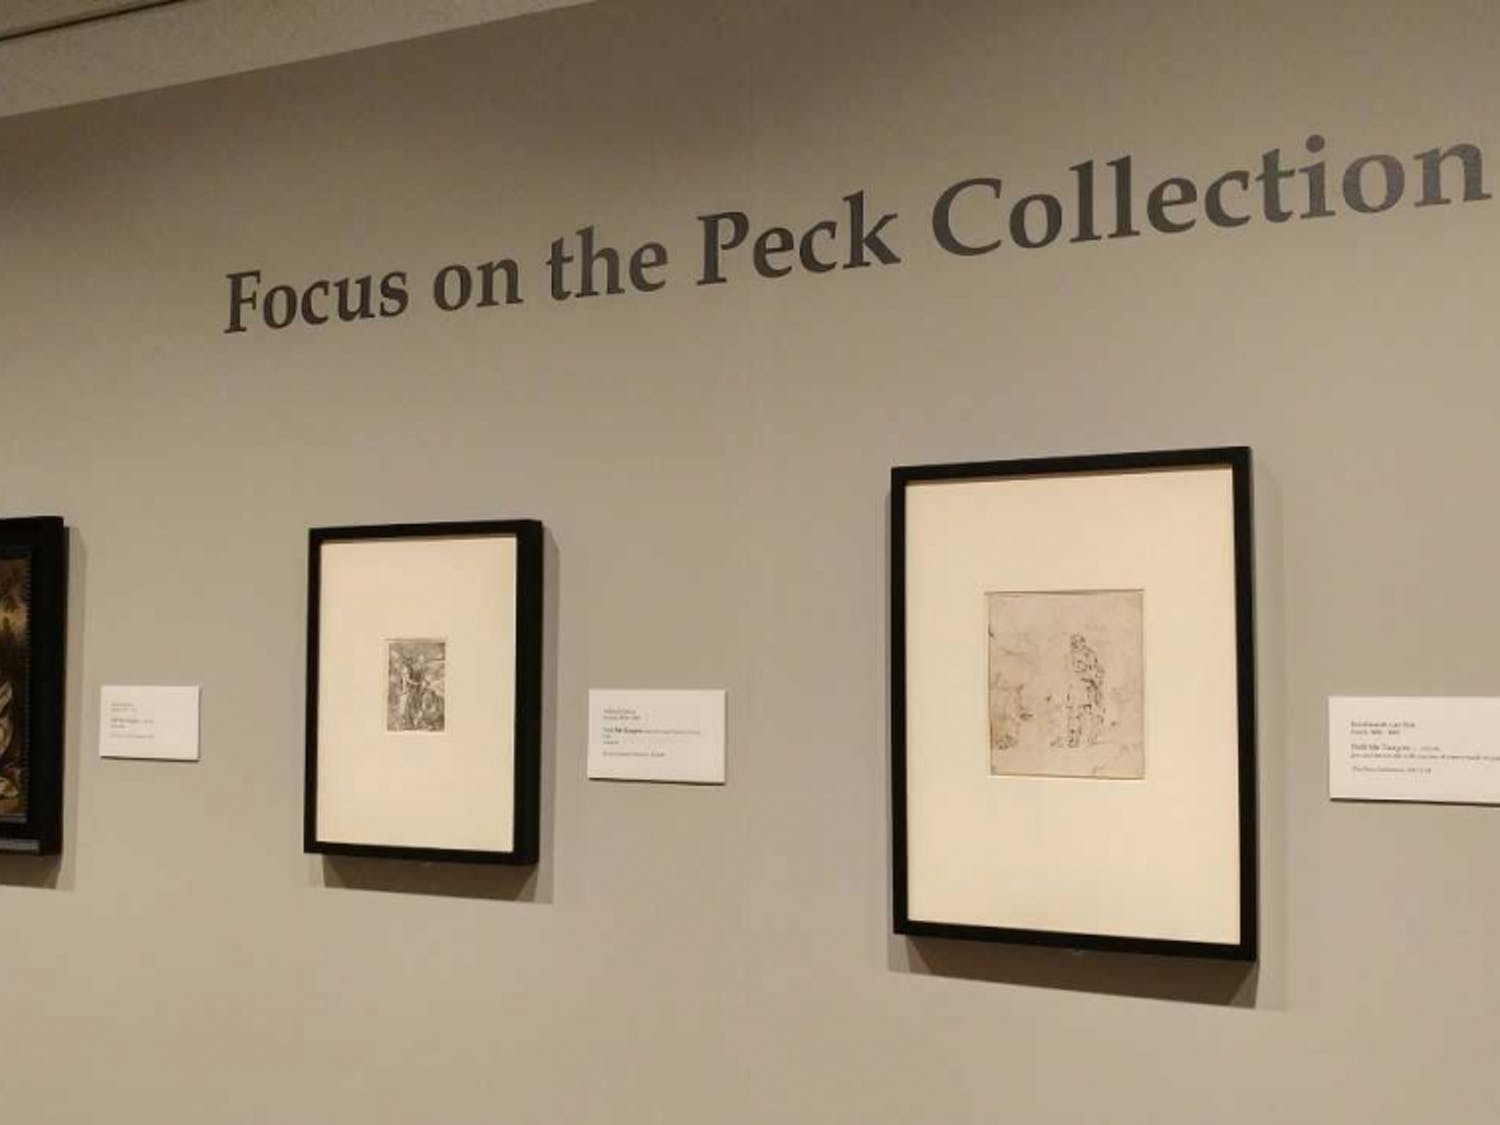 Focus on the Peck Collection will be on view at the Ackland Art Museum until Oct. 8. Photo courtesy of Emily Bowles.